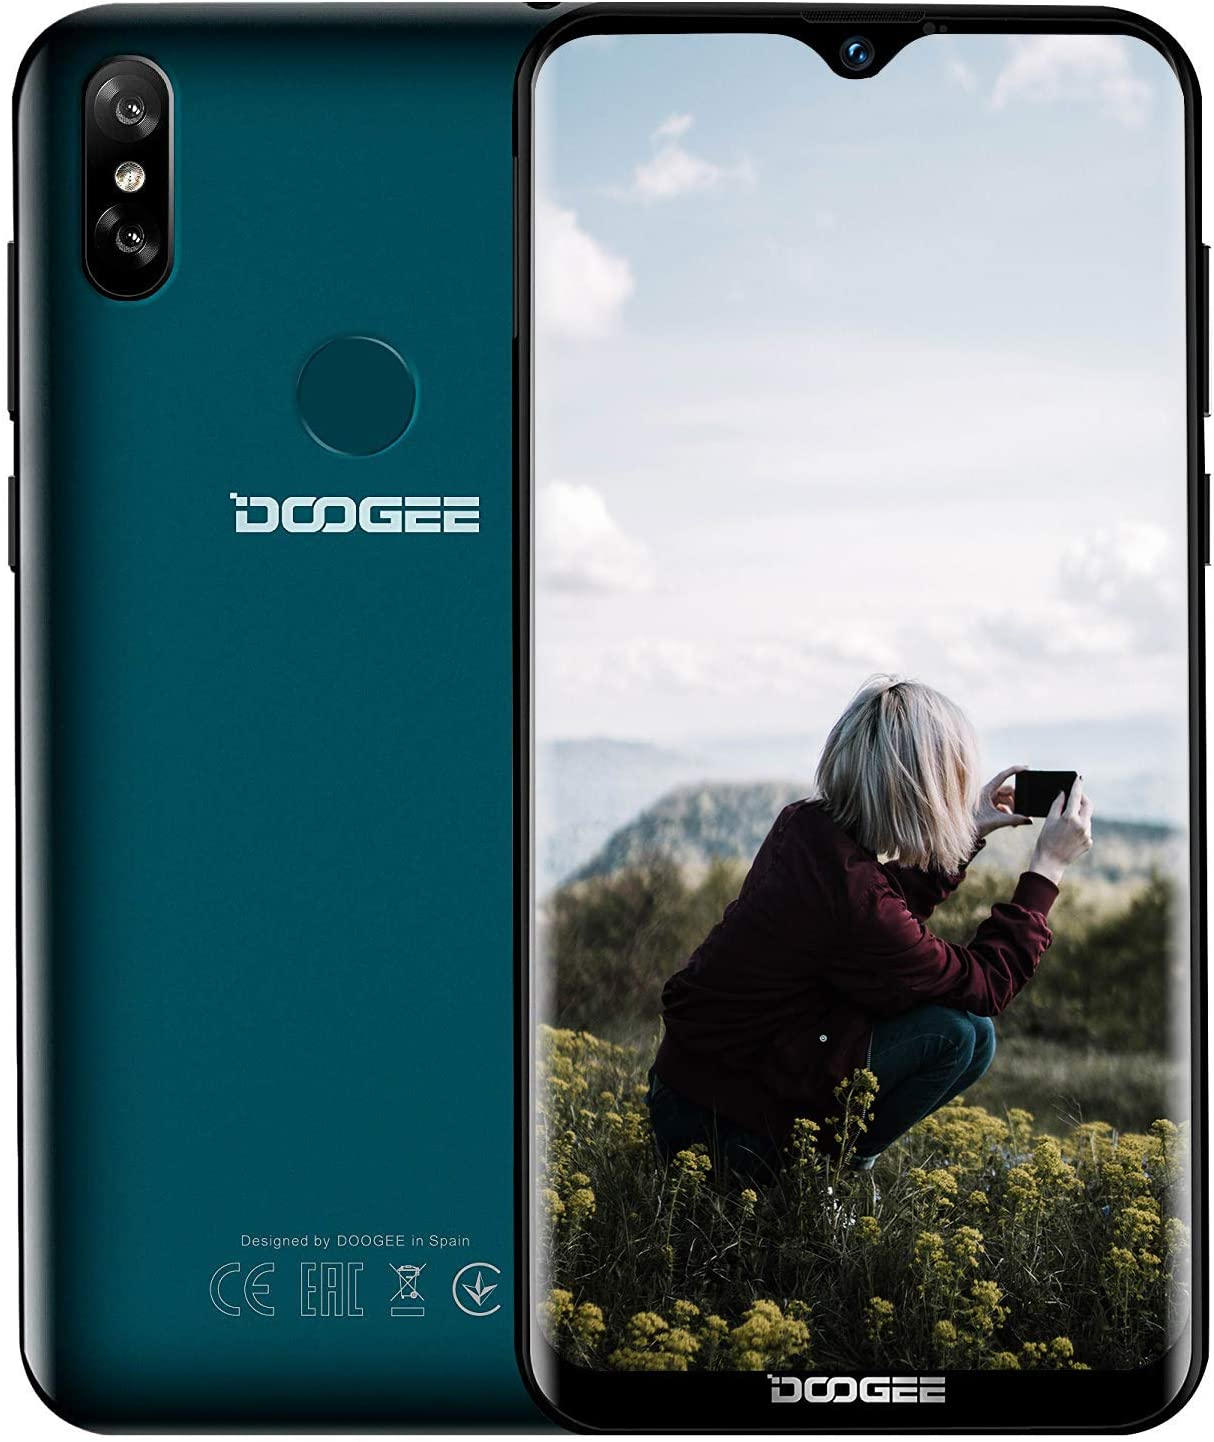 DOOGEE Y8 moviles Libres Smartphone 4G LTE,Android 9.0 Pantalla ...